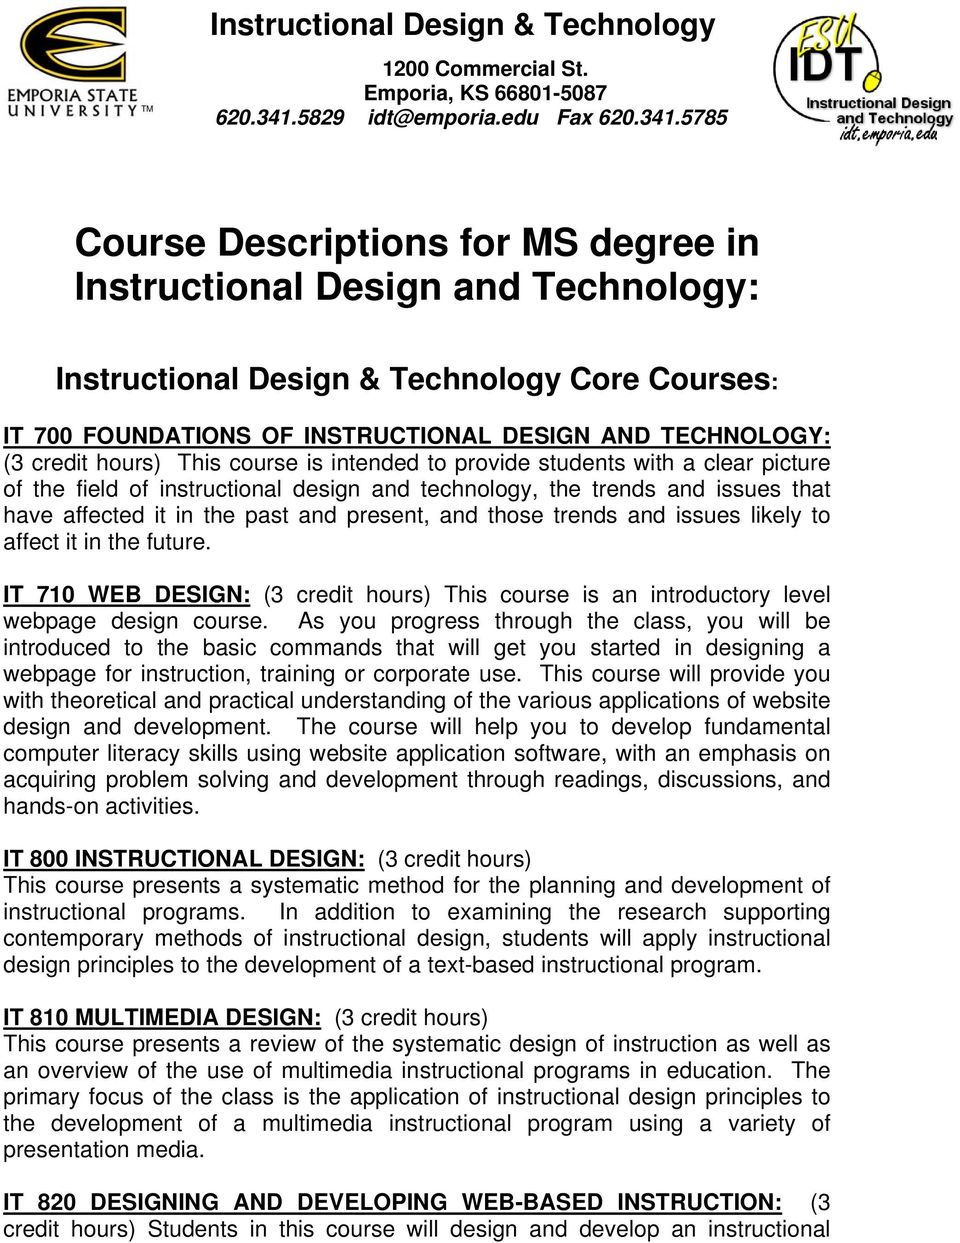 Course Descriptions For Ms Degree In Instructional Design And Technology Pdf Free Download